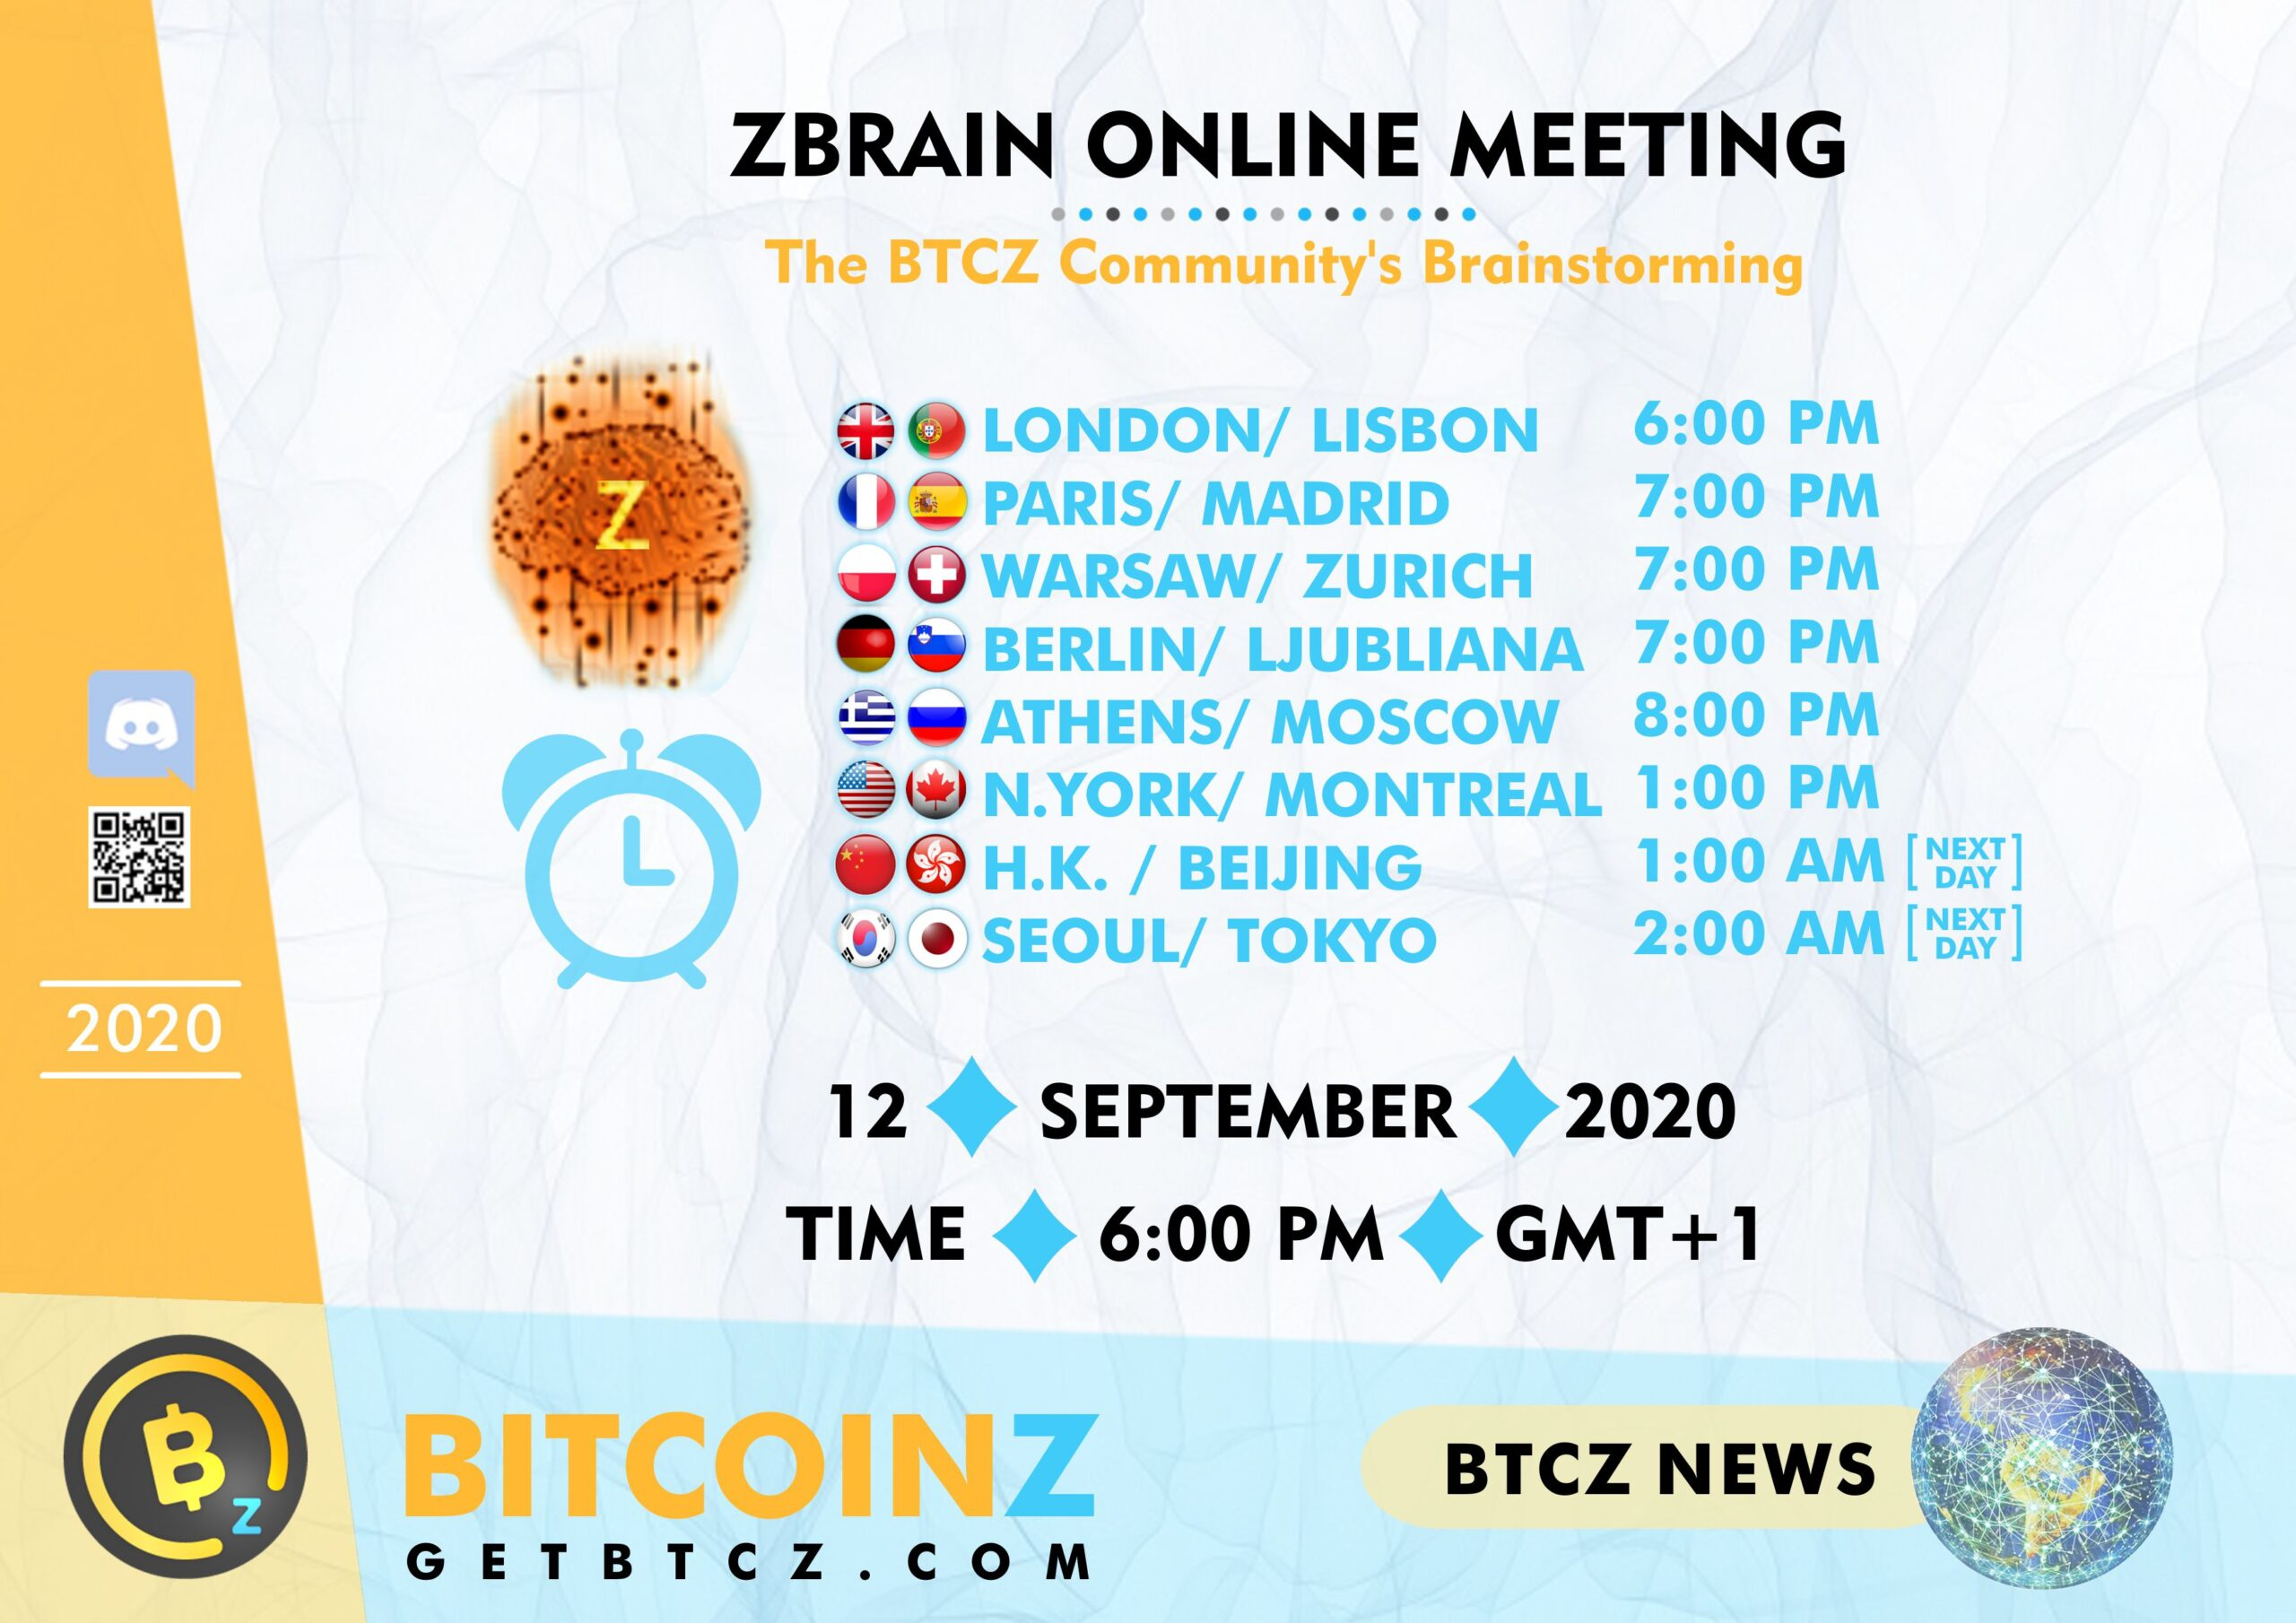 September ZBRAIN Meeting: COUNTDOWN!